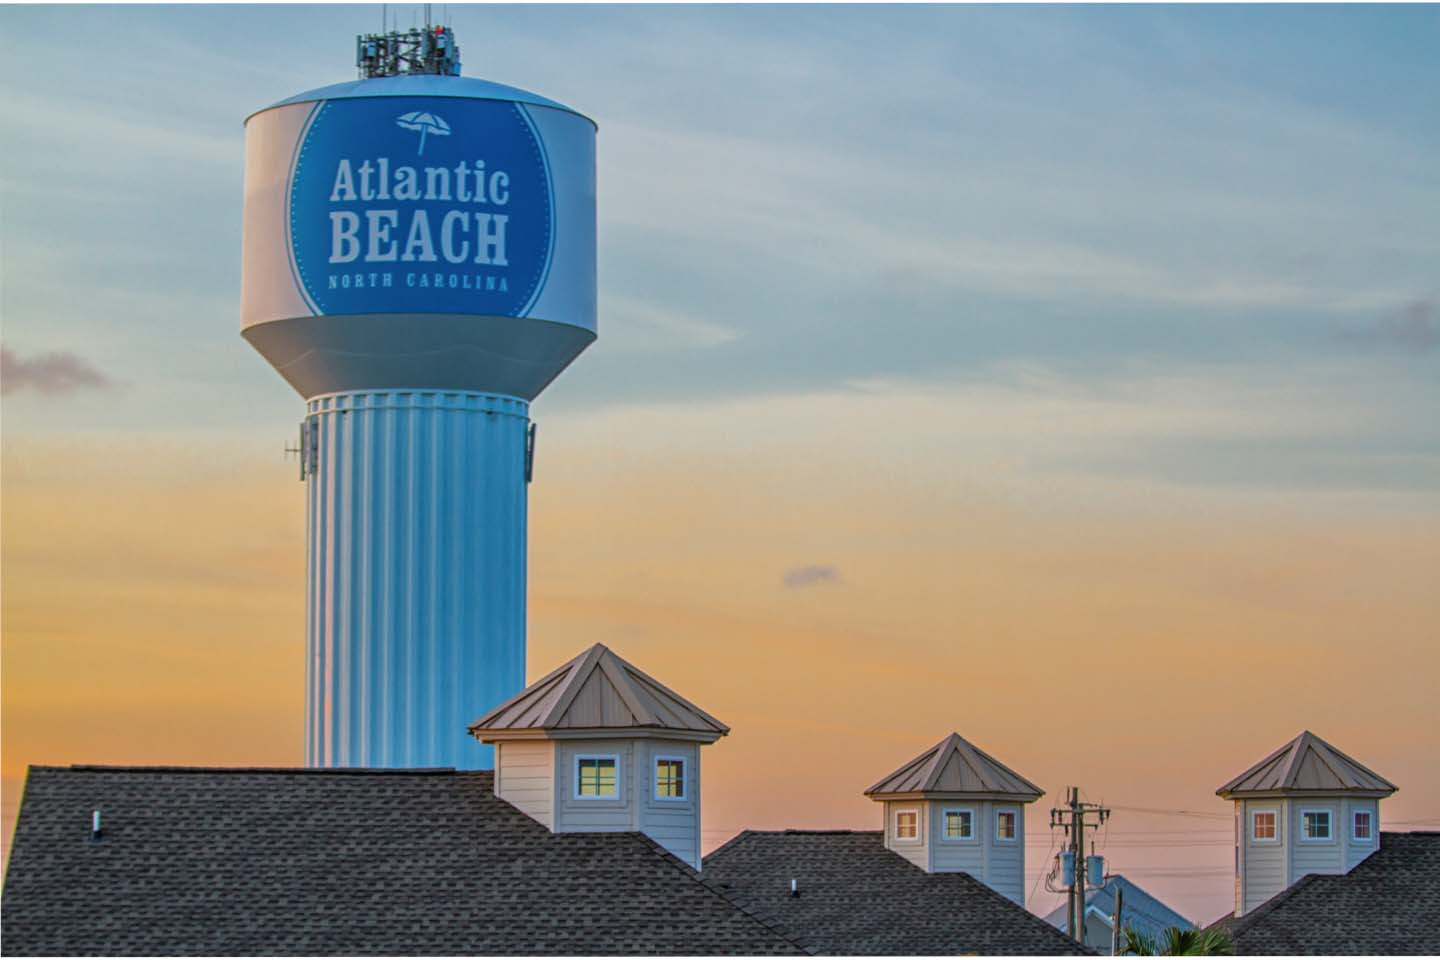 Arlington Place is a private waterfront neighborhood located in Minnesott Beach, NC